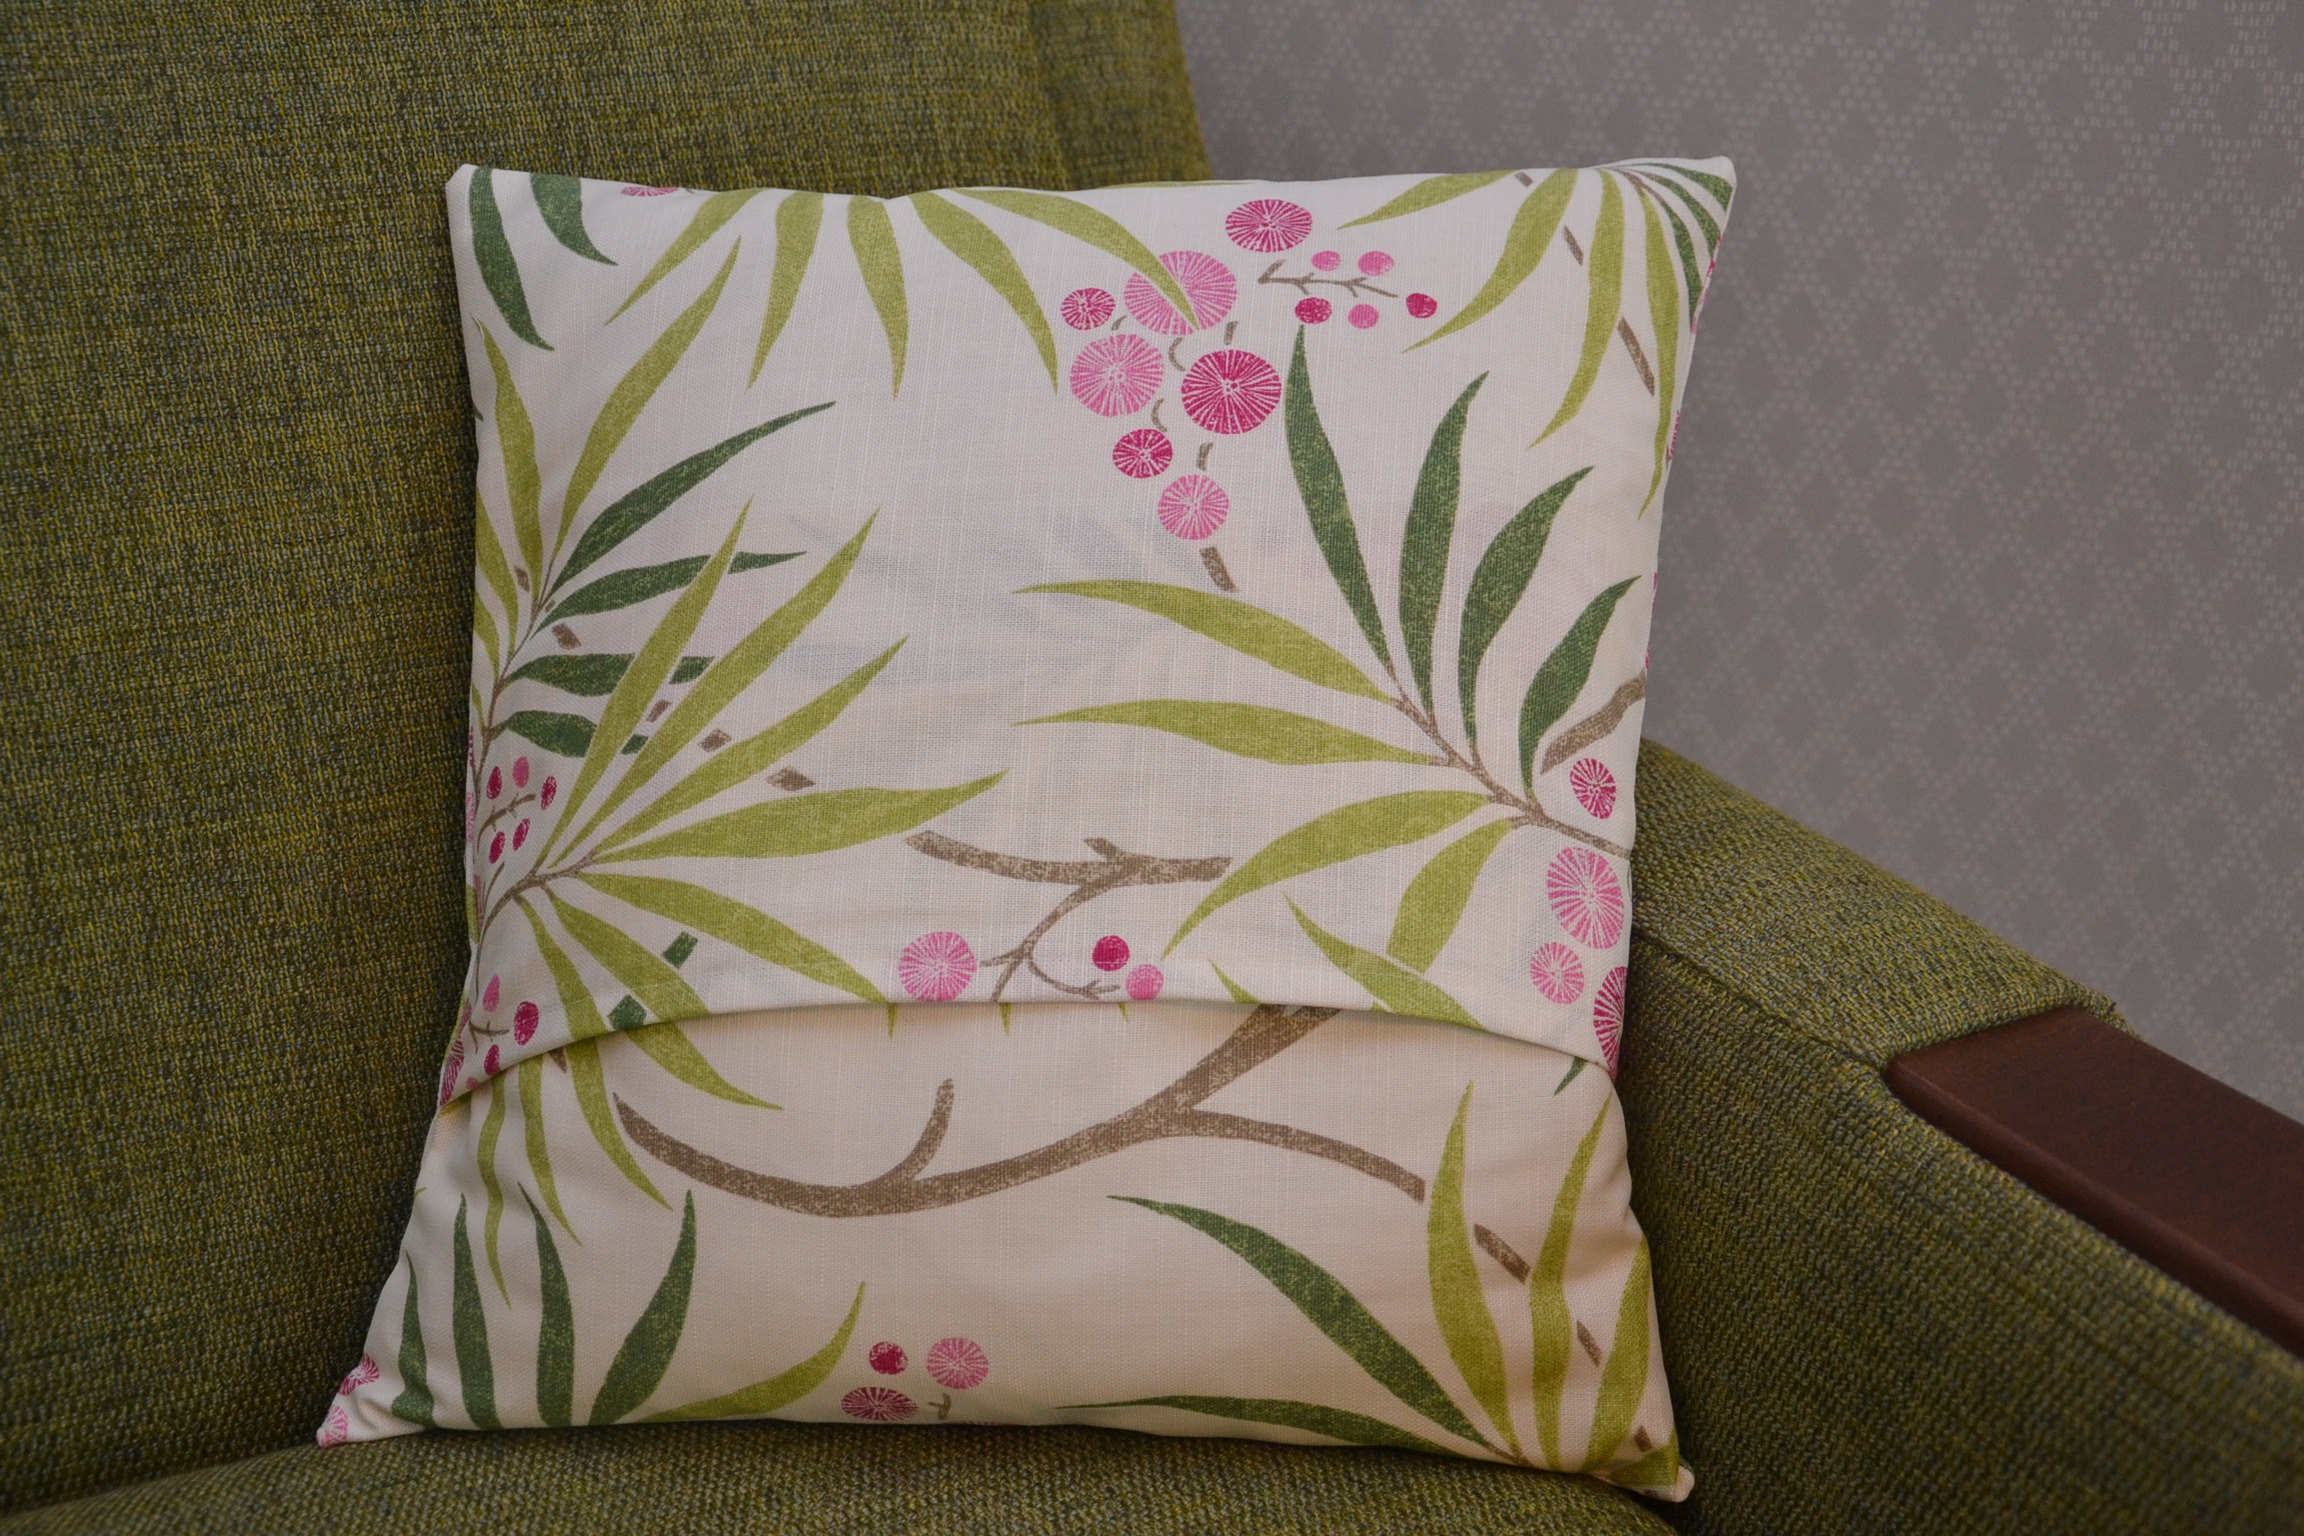 Online sewing class -Beginners sewing class - Learn to sew a Cushion Cover